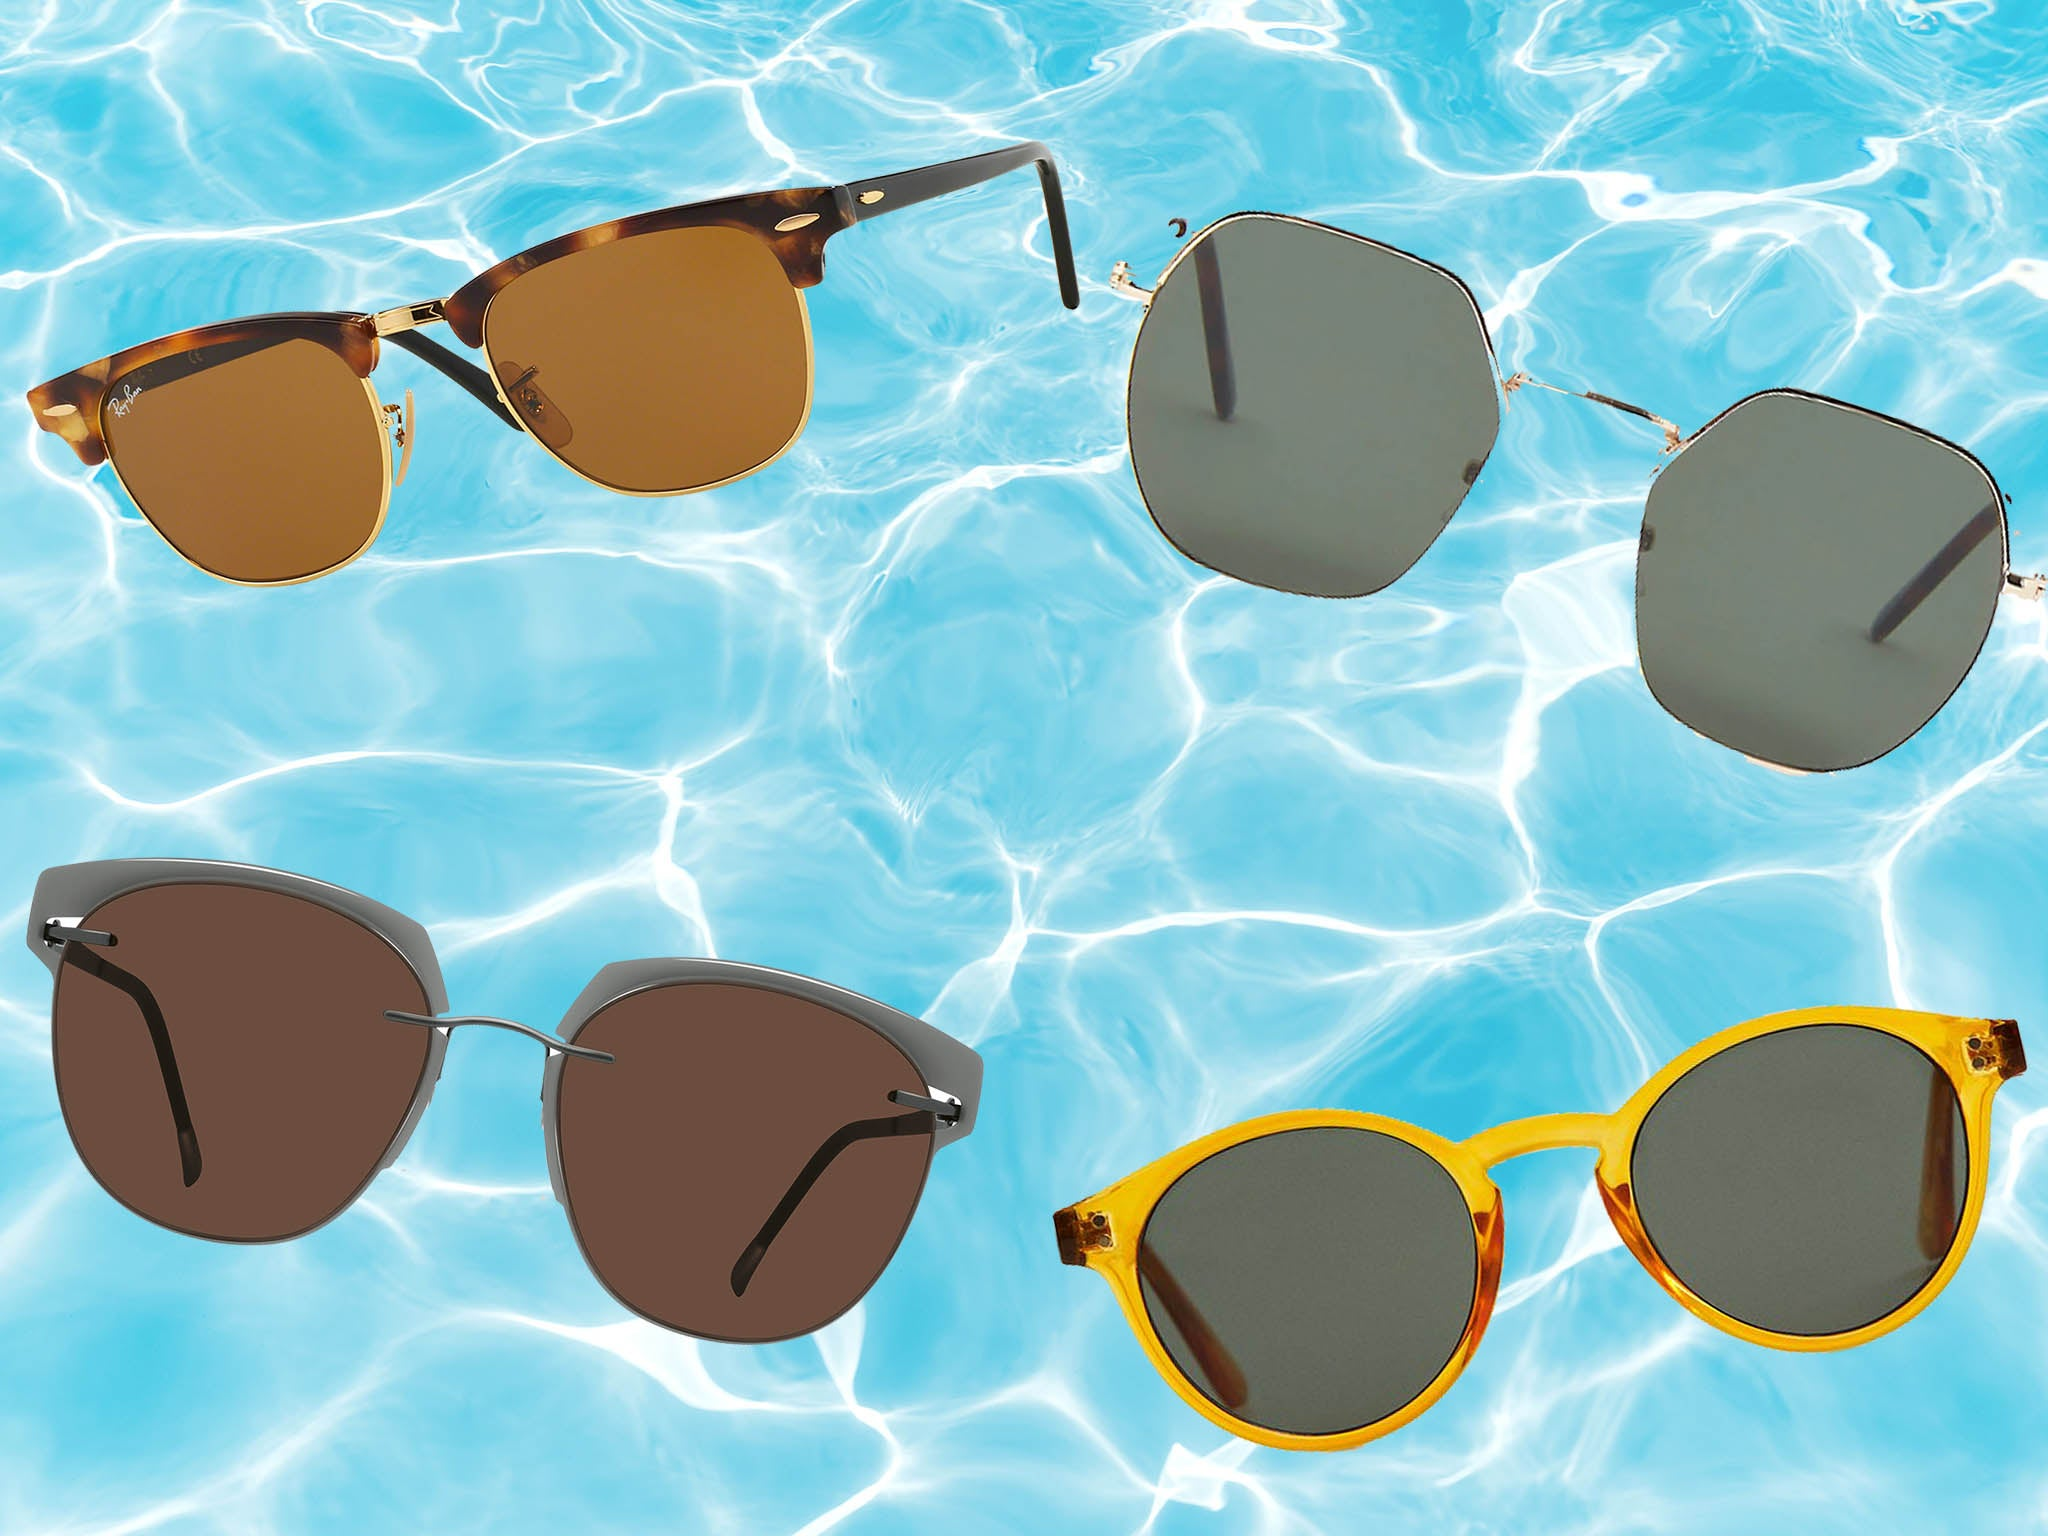 ba465a17d292 10 best men's sunglasses to invest in this summer | The Independent